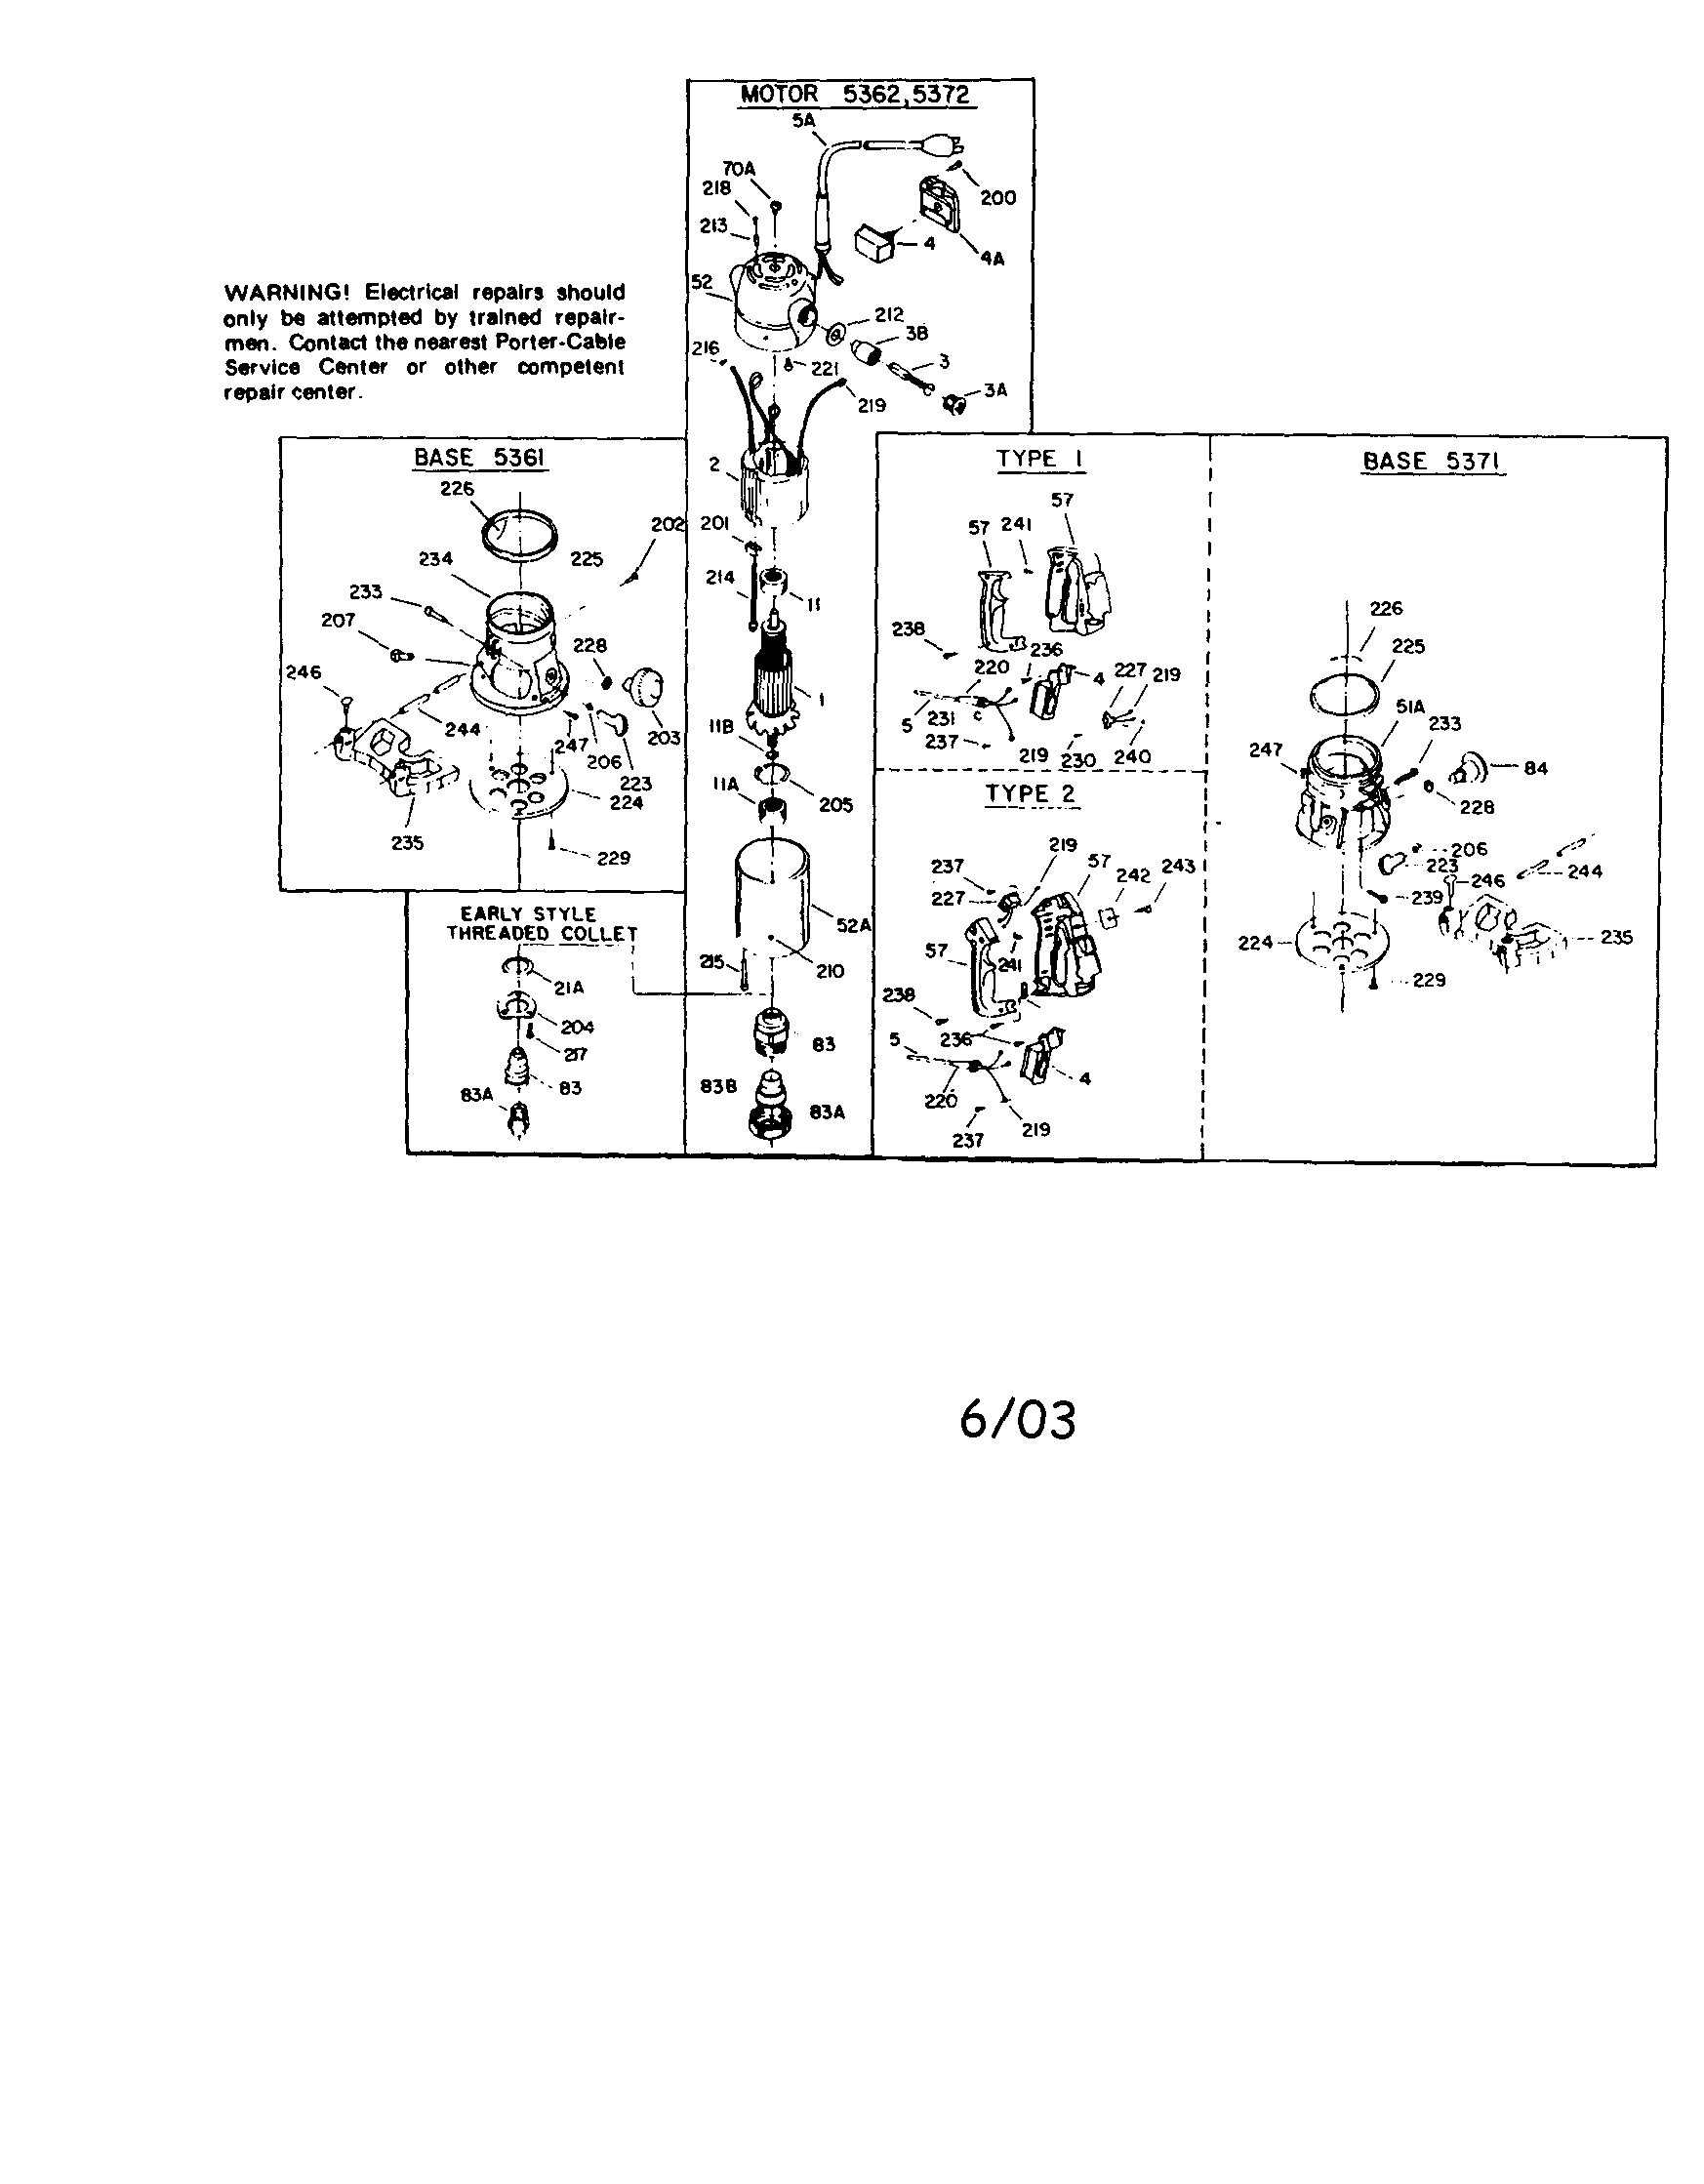 Rockwell Router Model 5141 Wiring Diagram,Router